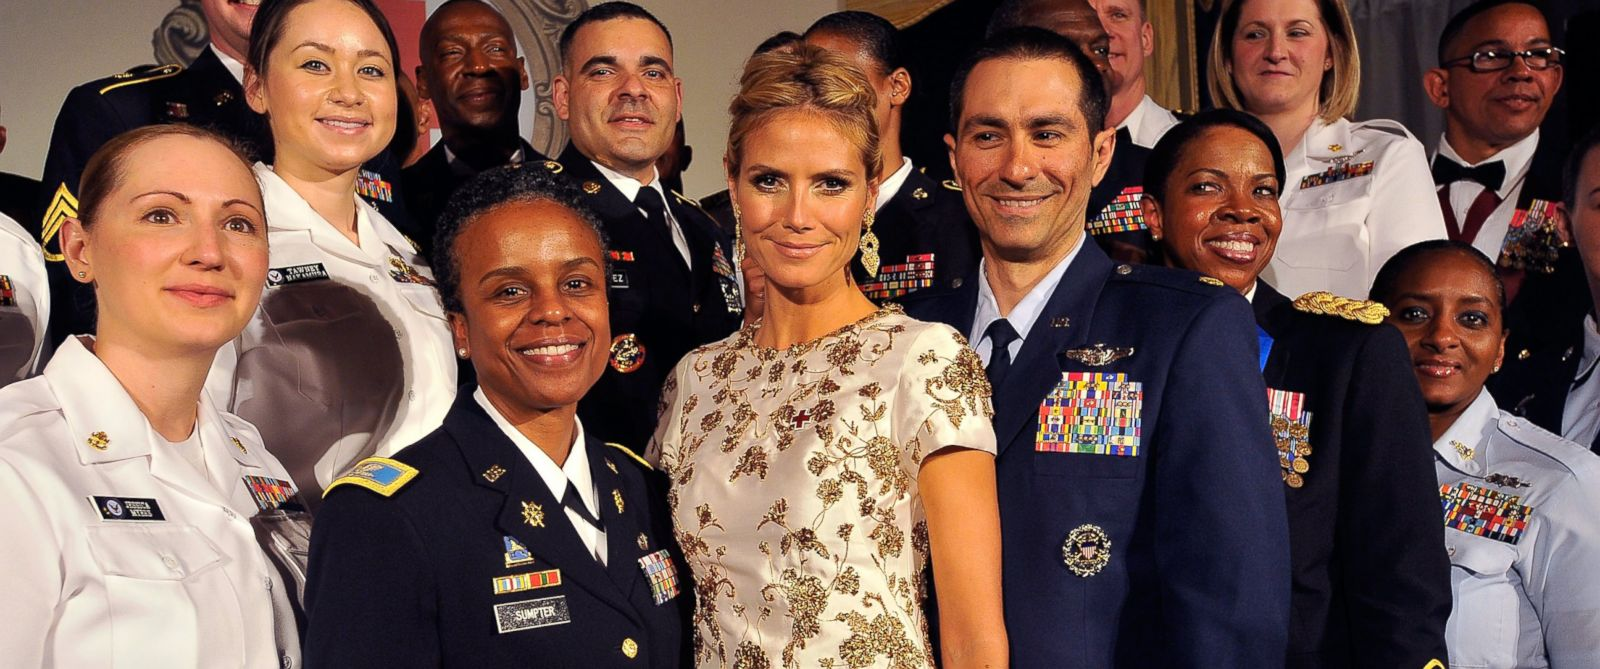 PHOTO: Heidi Klum stands with members of the military